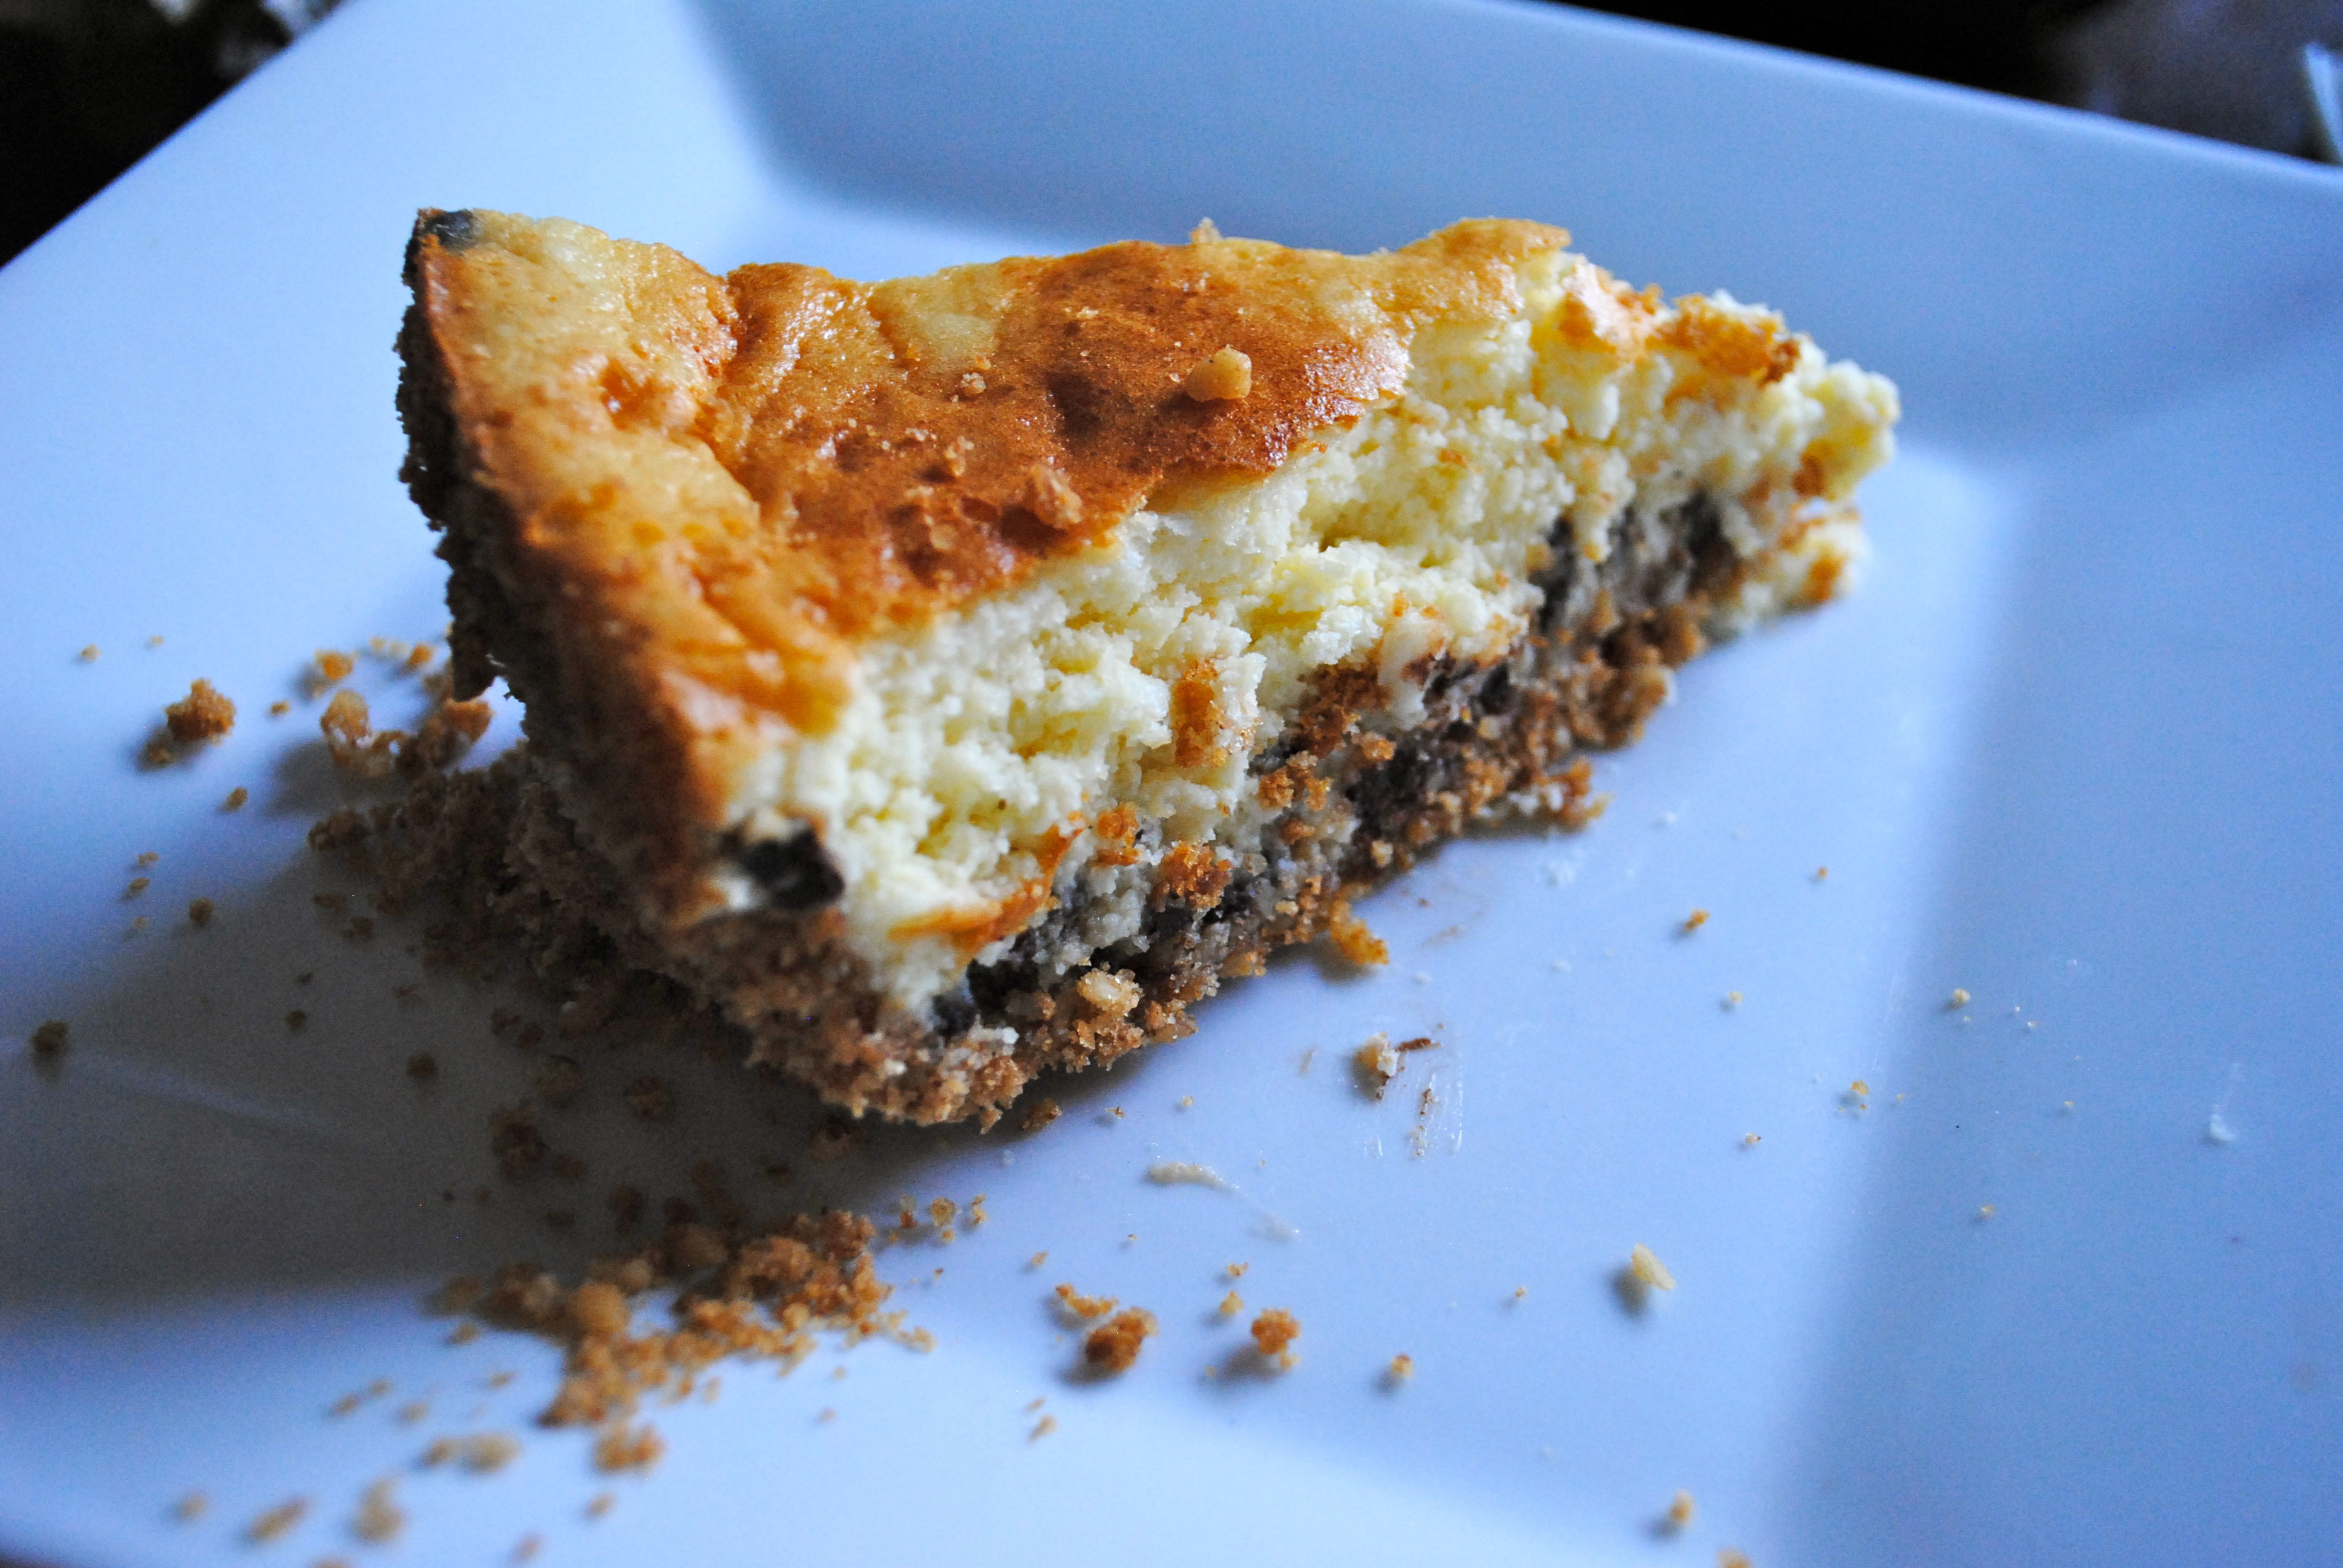 Toaster Oven Chocolate Chip Cheesecake